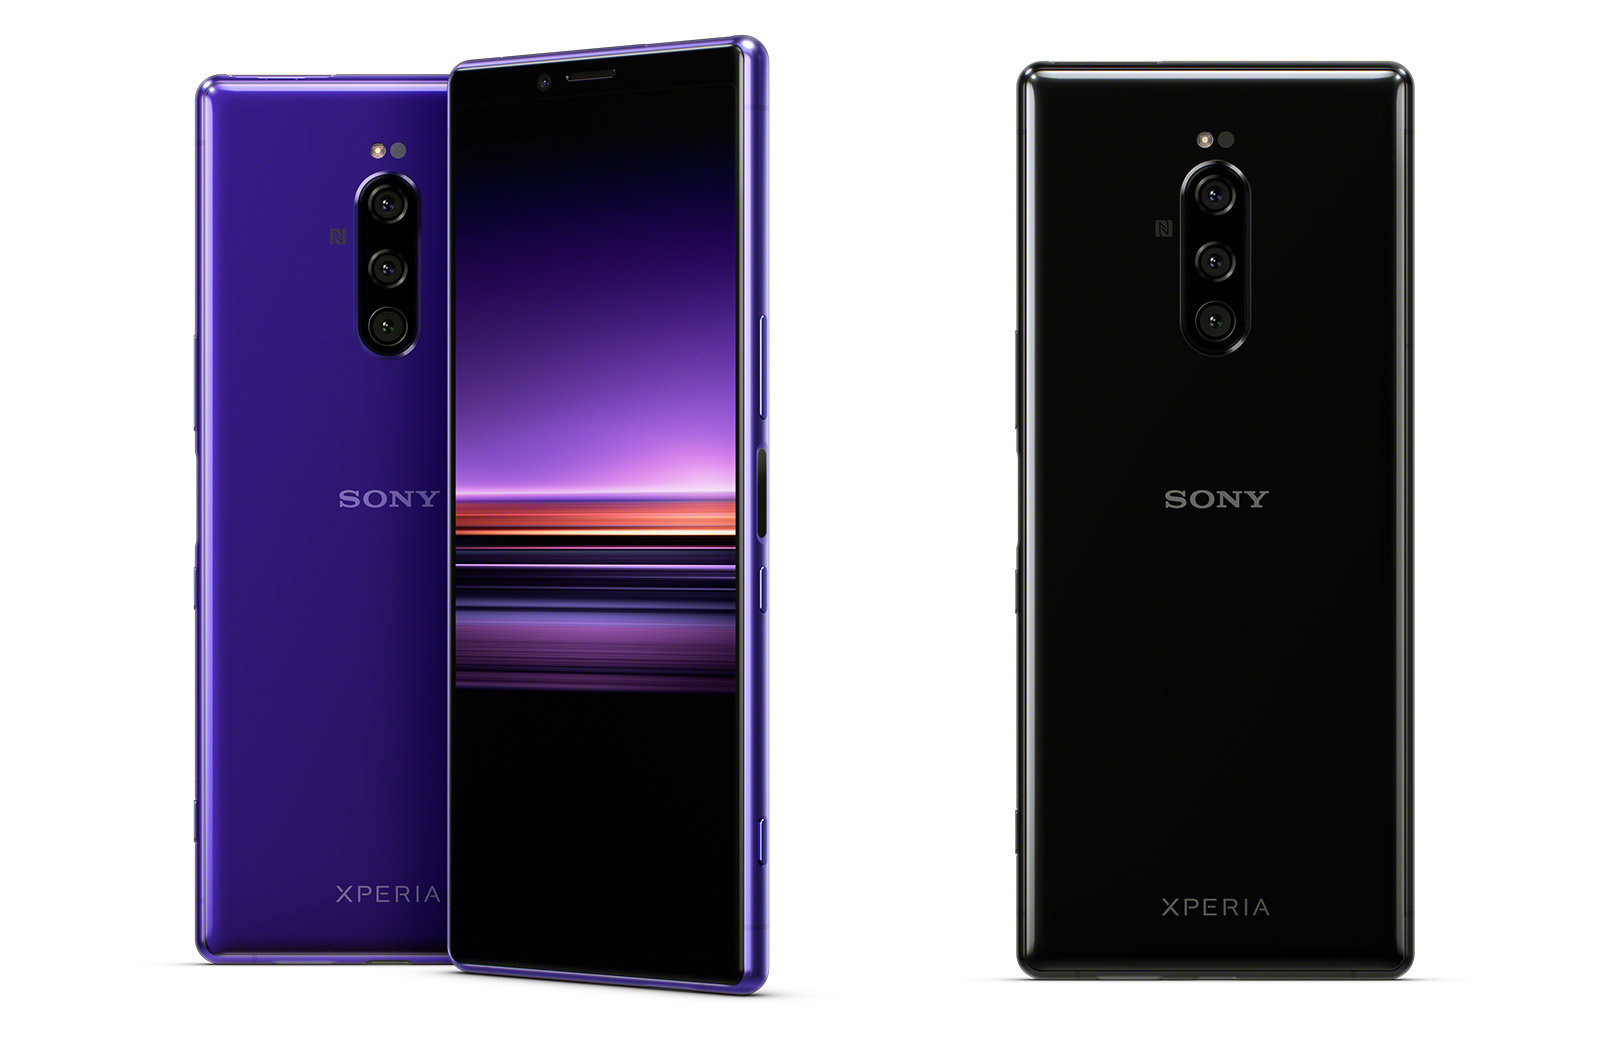 Sony Xperia Ace price in India, specifications, comparison (17th May 2019)